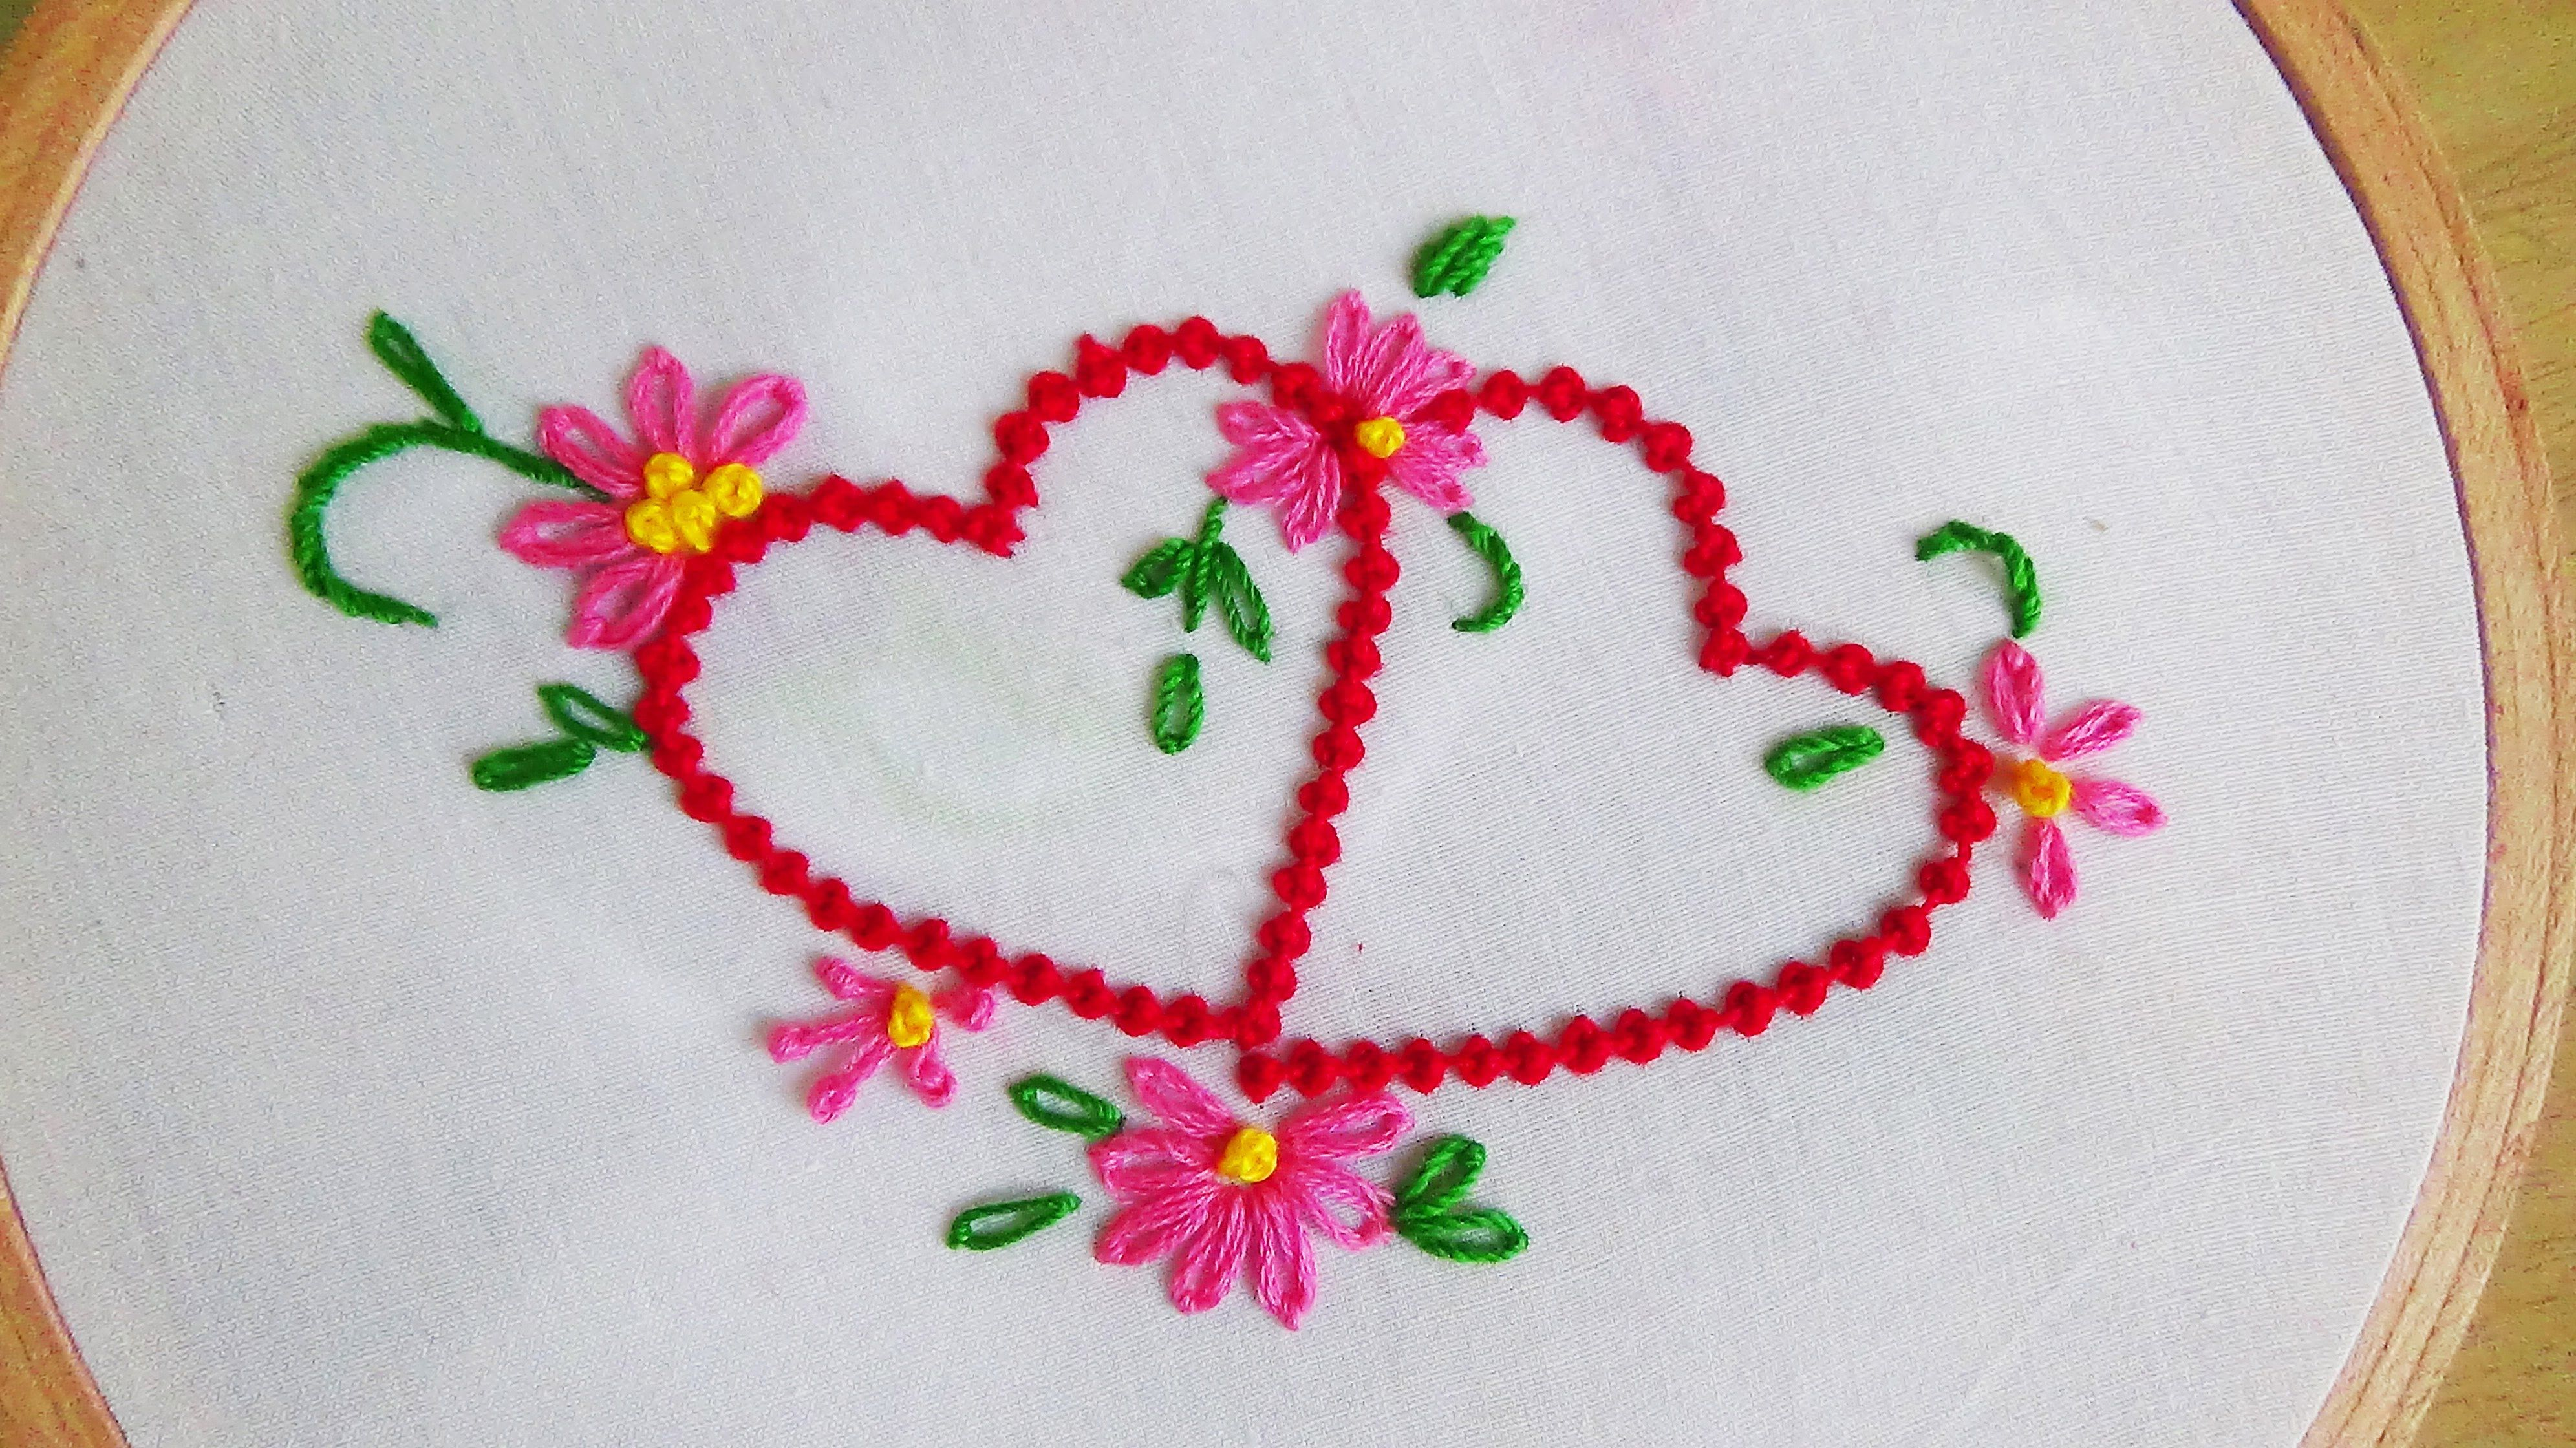 Best Websites For Free Embroidery Designs